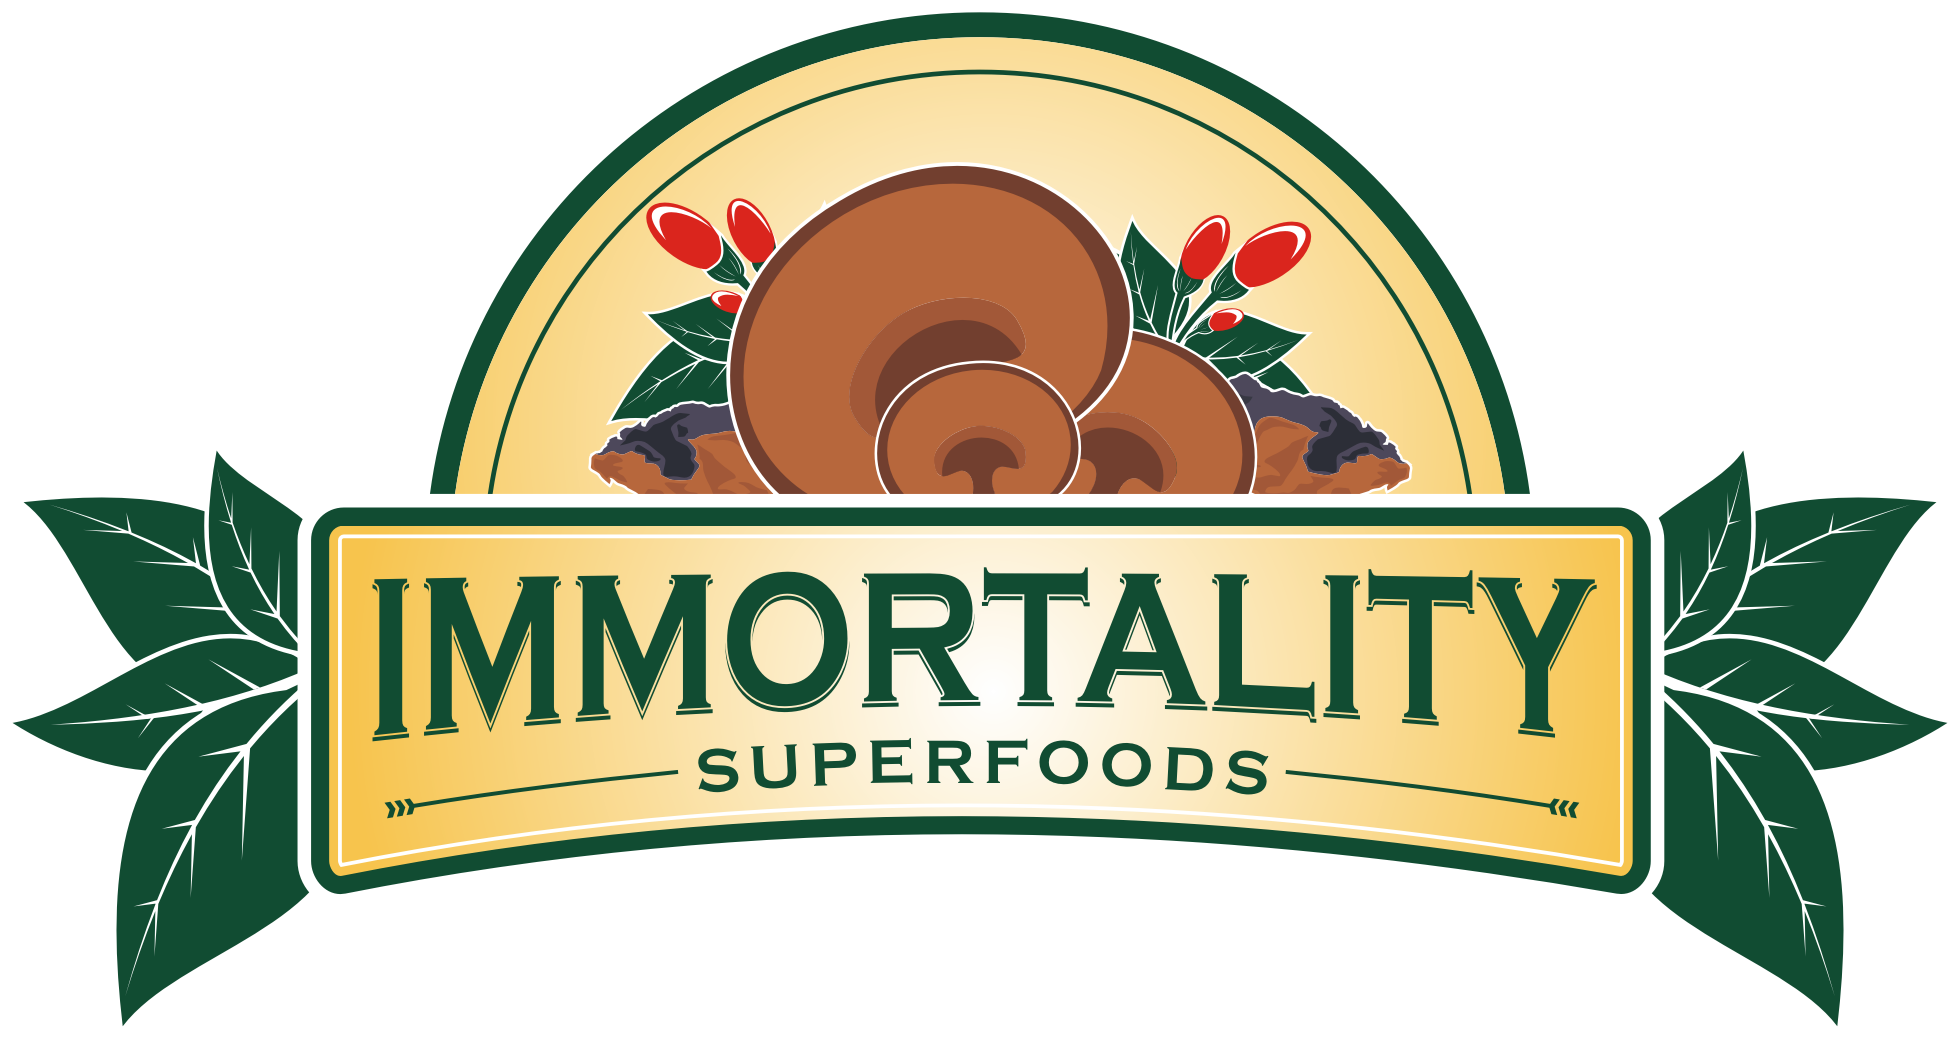 Immortality Superfoods